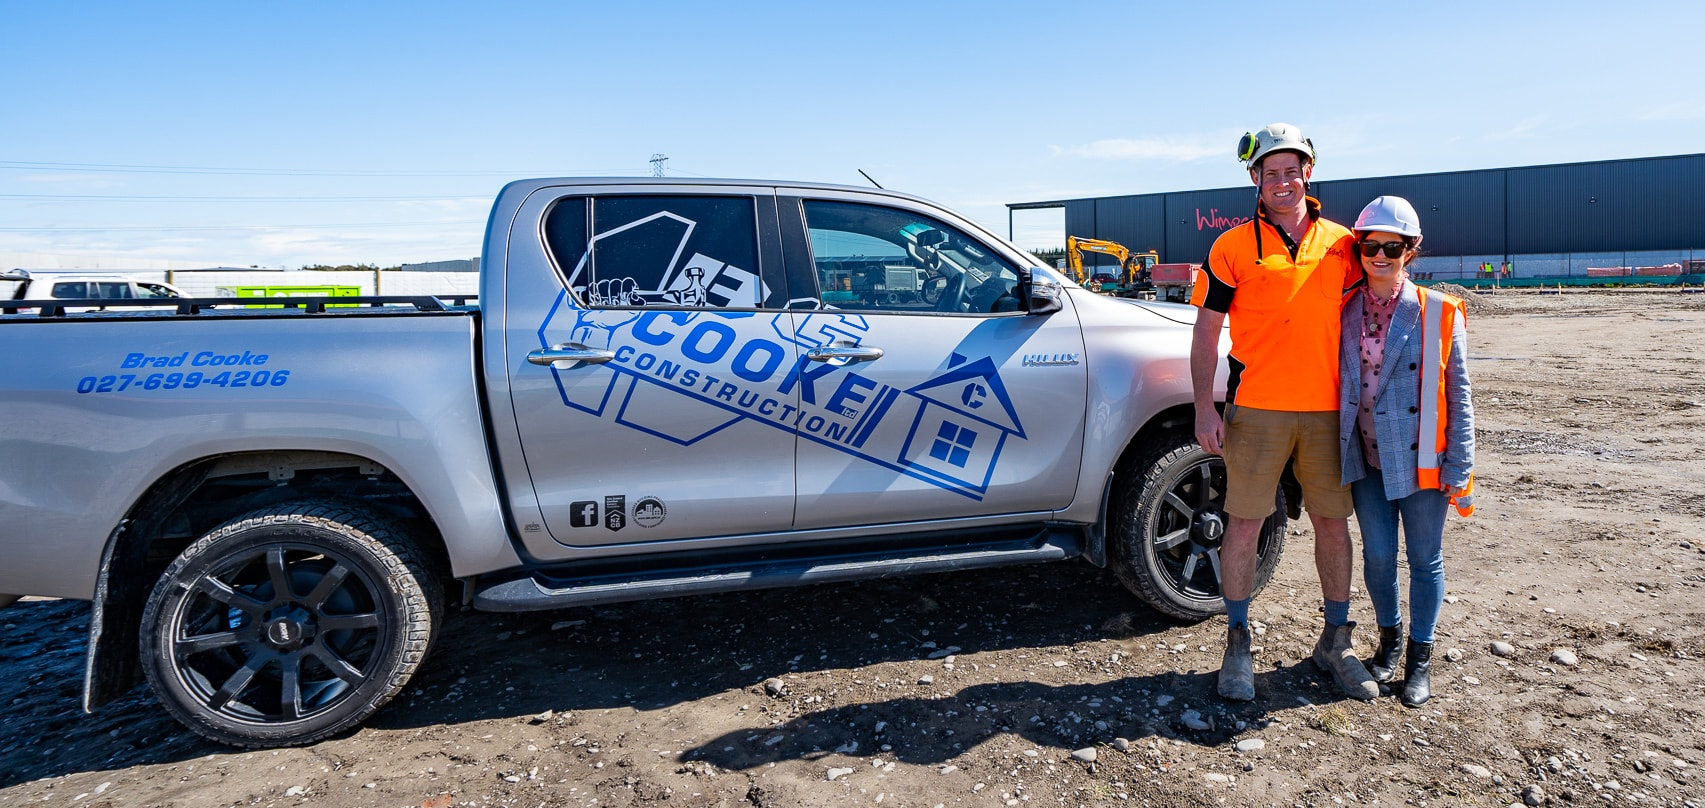 BG Cooke Construction are friendly, Offering building services in North Canterbury